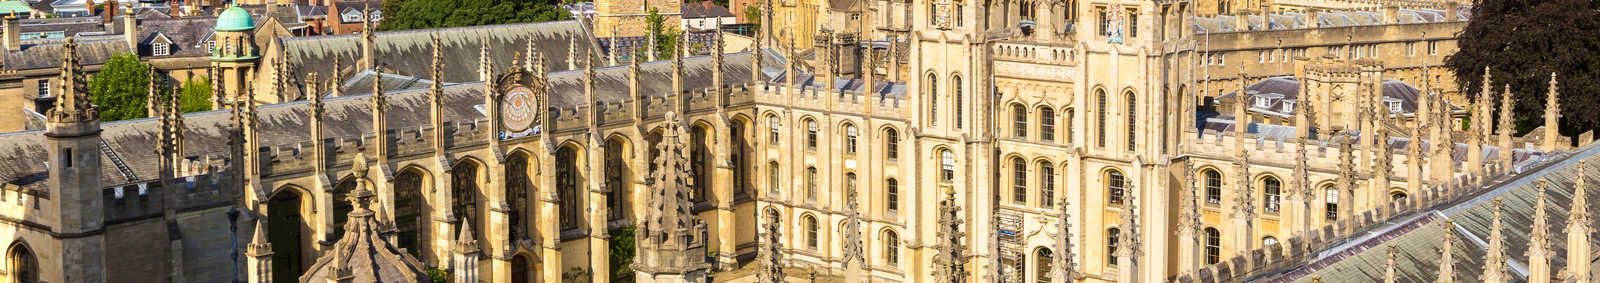 all_souls_college_oxford